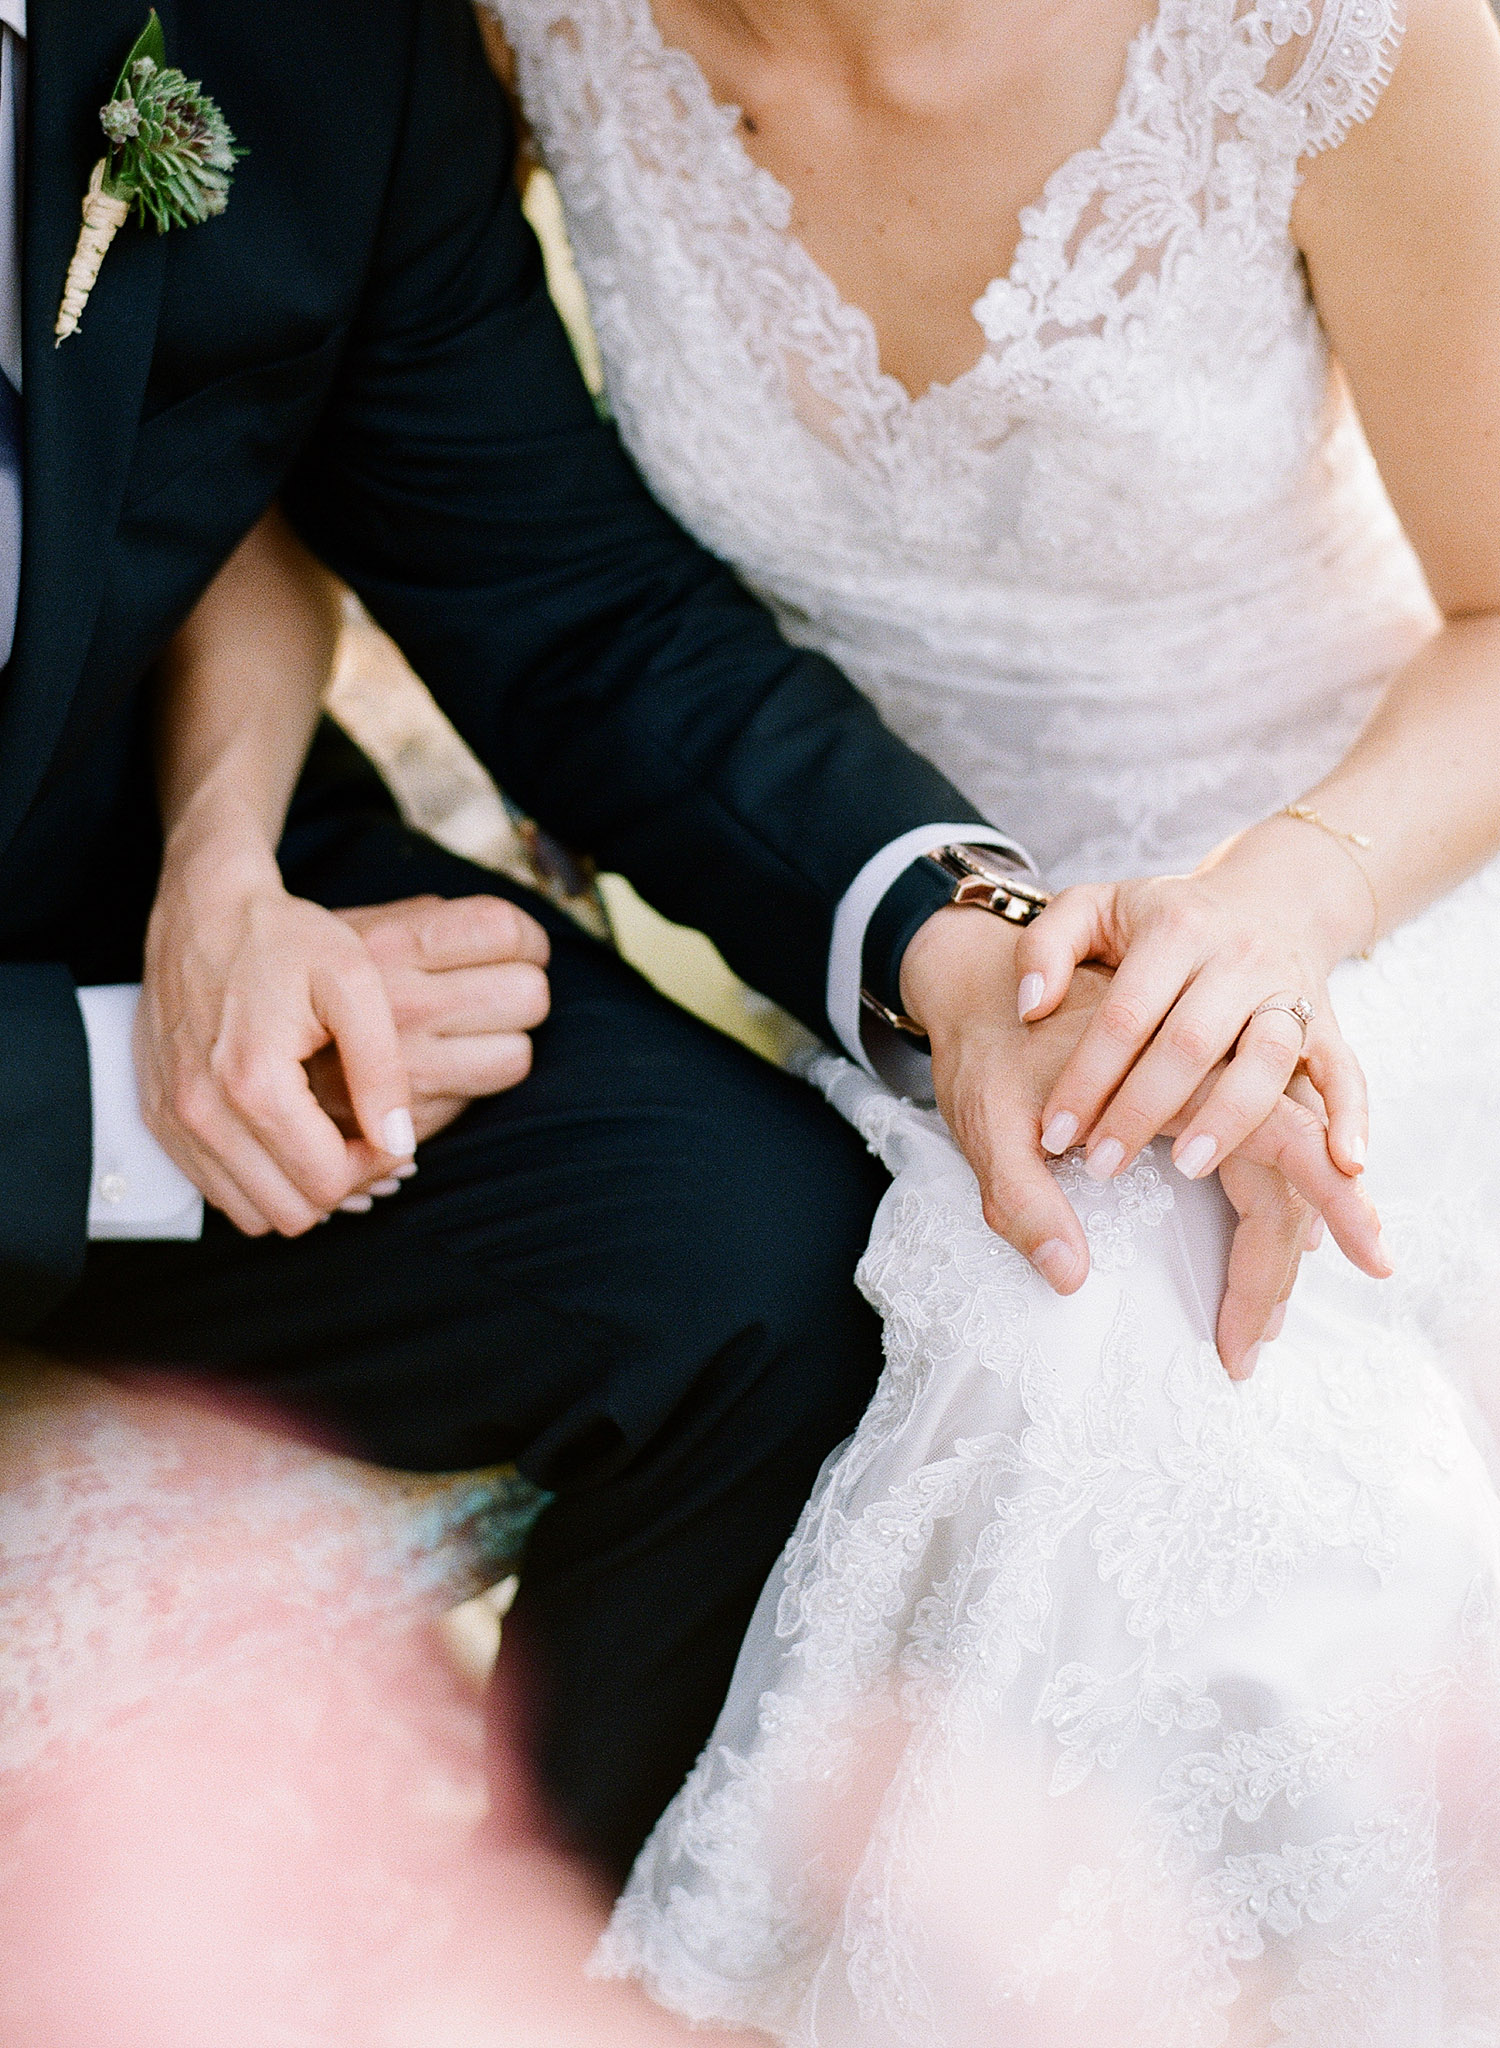 bride and groom hold hands through the pink springtime blooms at this springtime wedding at Northwind Perennial Garden - a beautiful wisconsin wedding venue - while Destination wedding photographer Lexia Frank Photographs this wedding on film